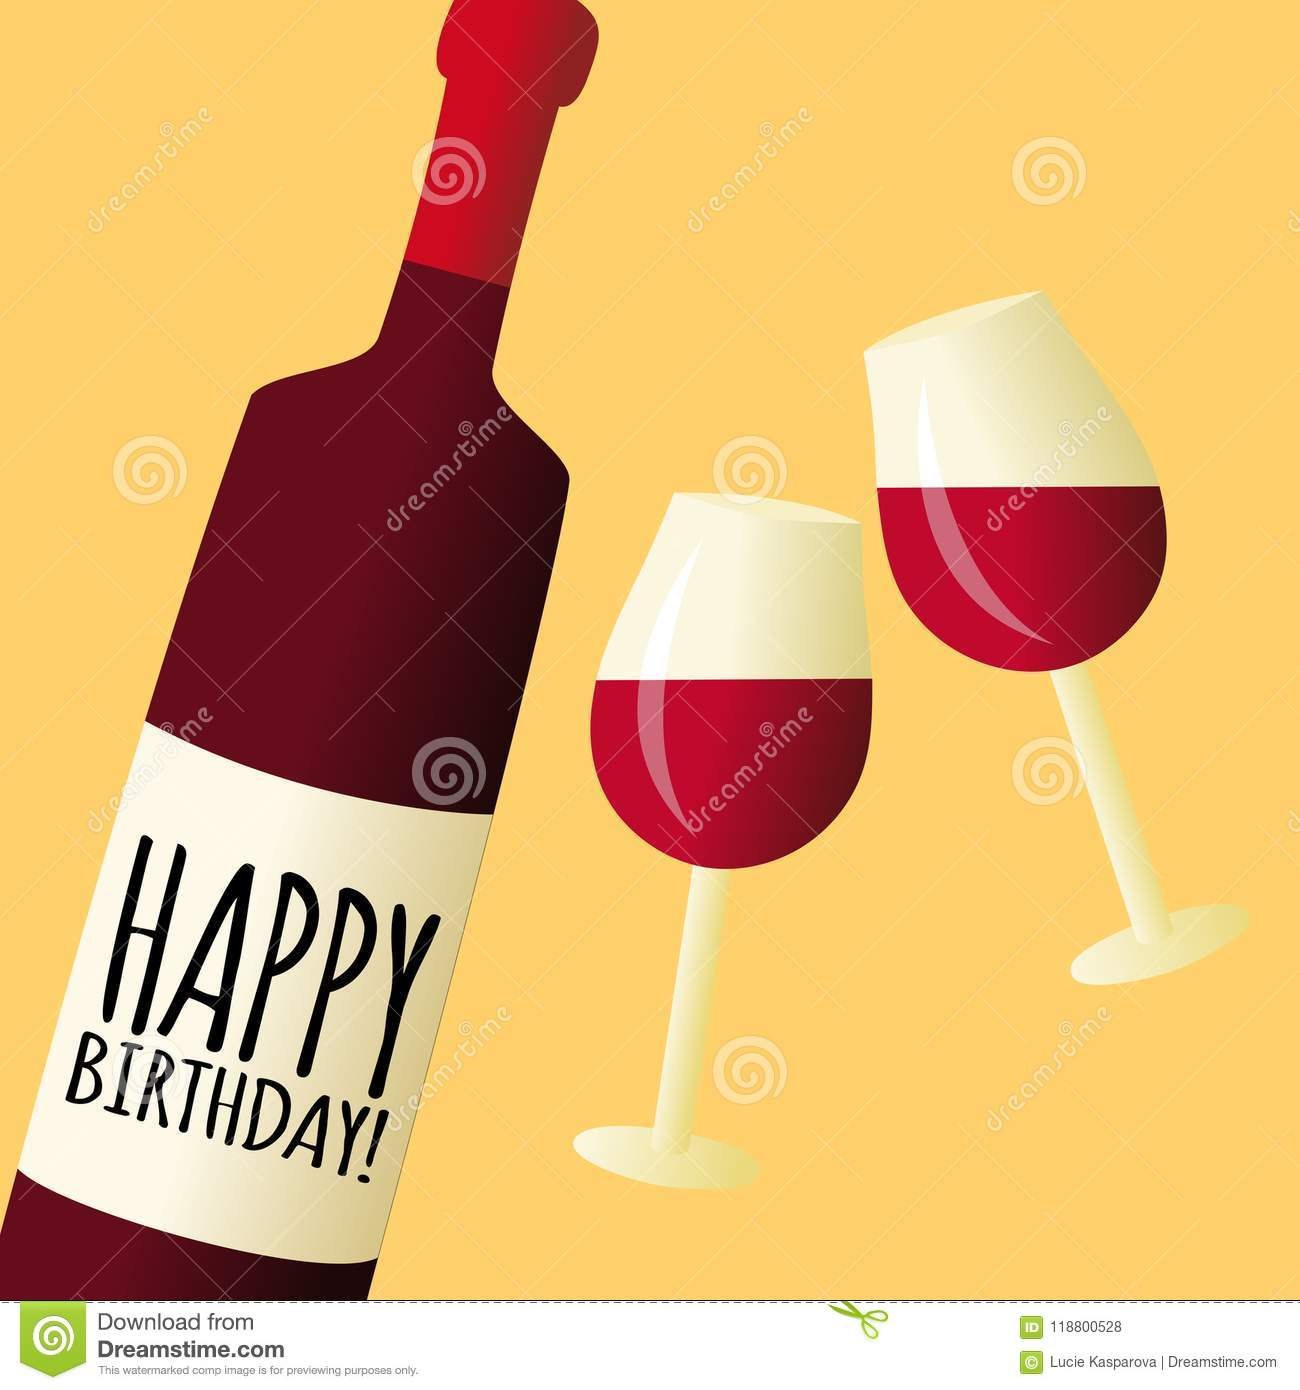 Bottle of wine with glasses happy birthday vector illustration card bottle of red wine with glasses happy birthday vector greeting card illustration m4hsunfo